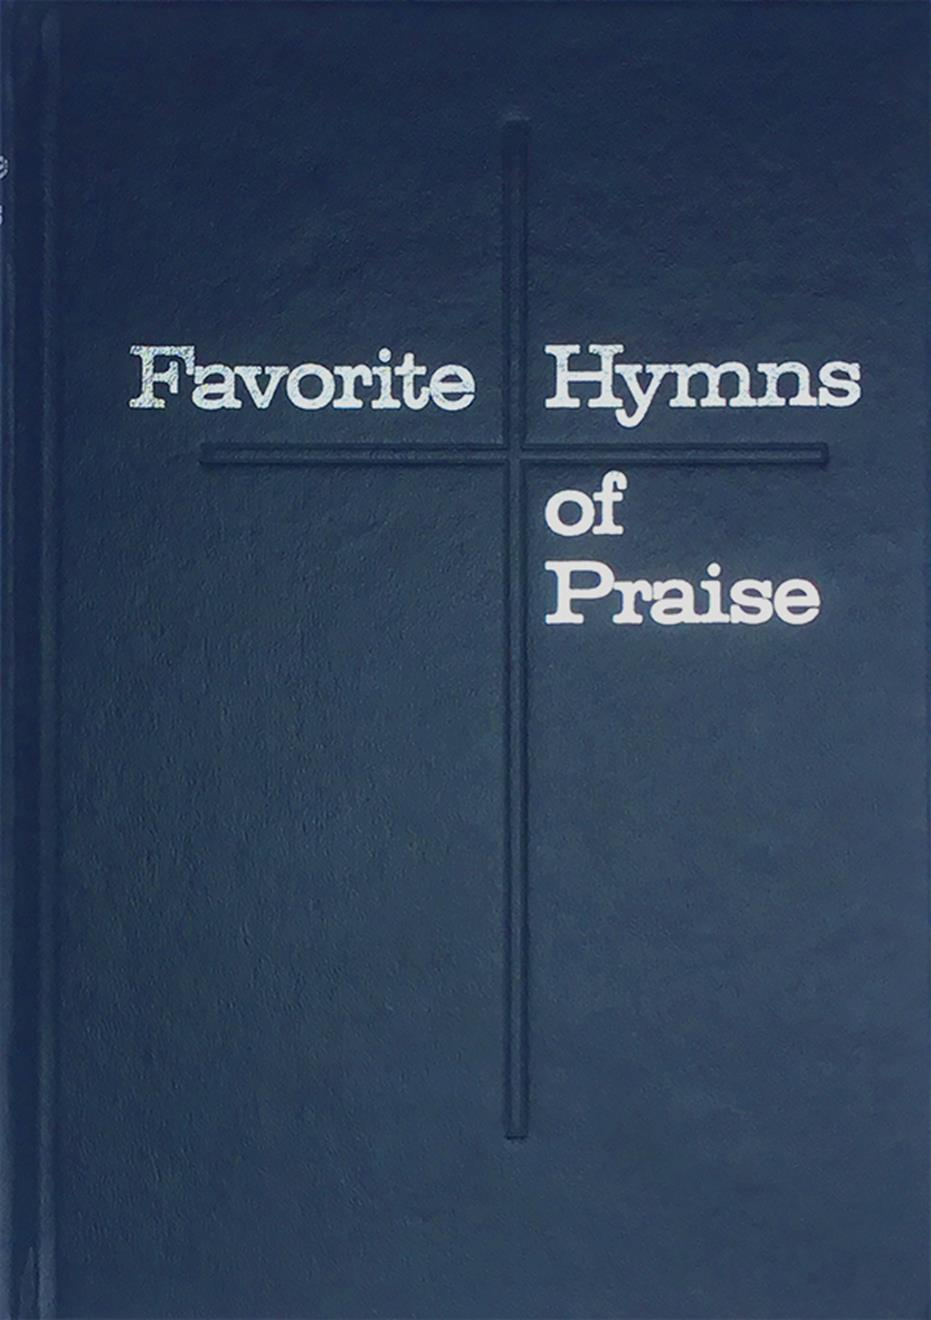 Favorite Hymns of Praise - Blue Cover Image